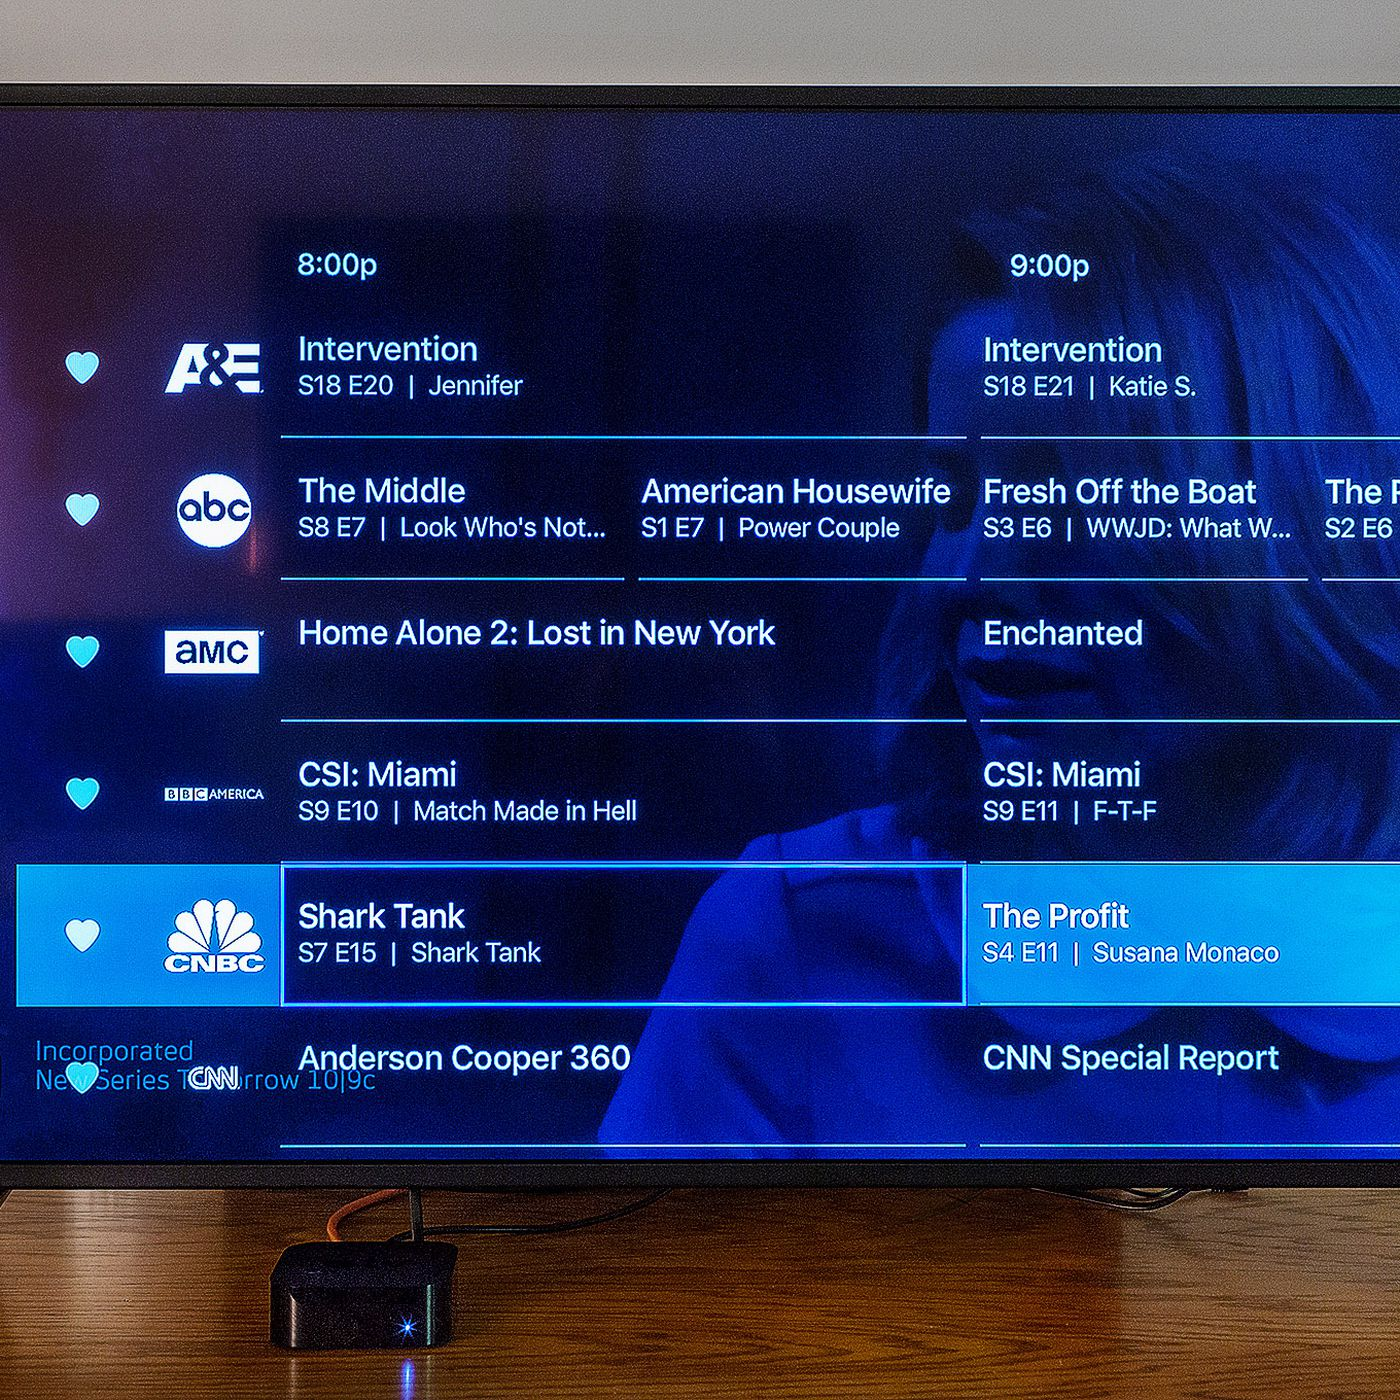 directv now channel guide not working